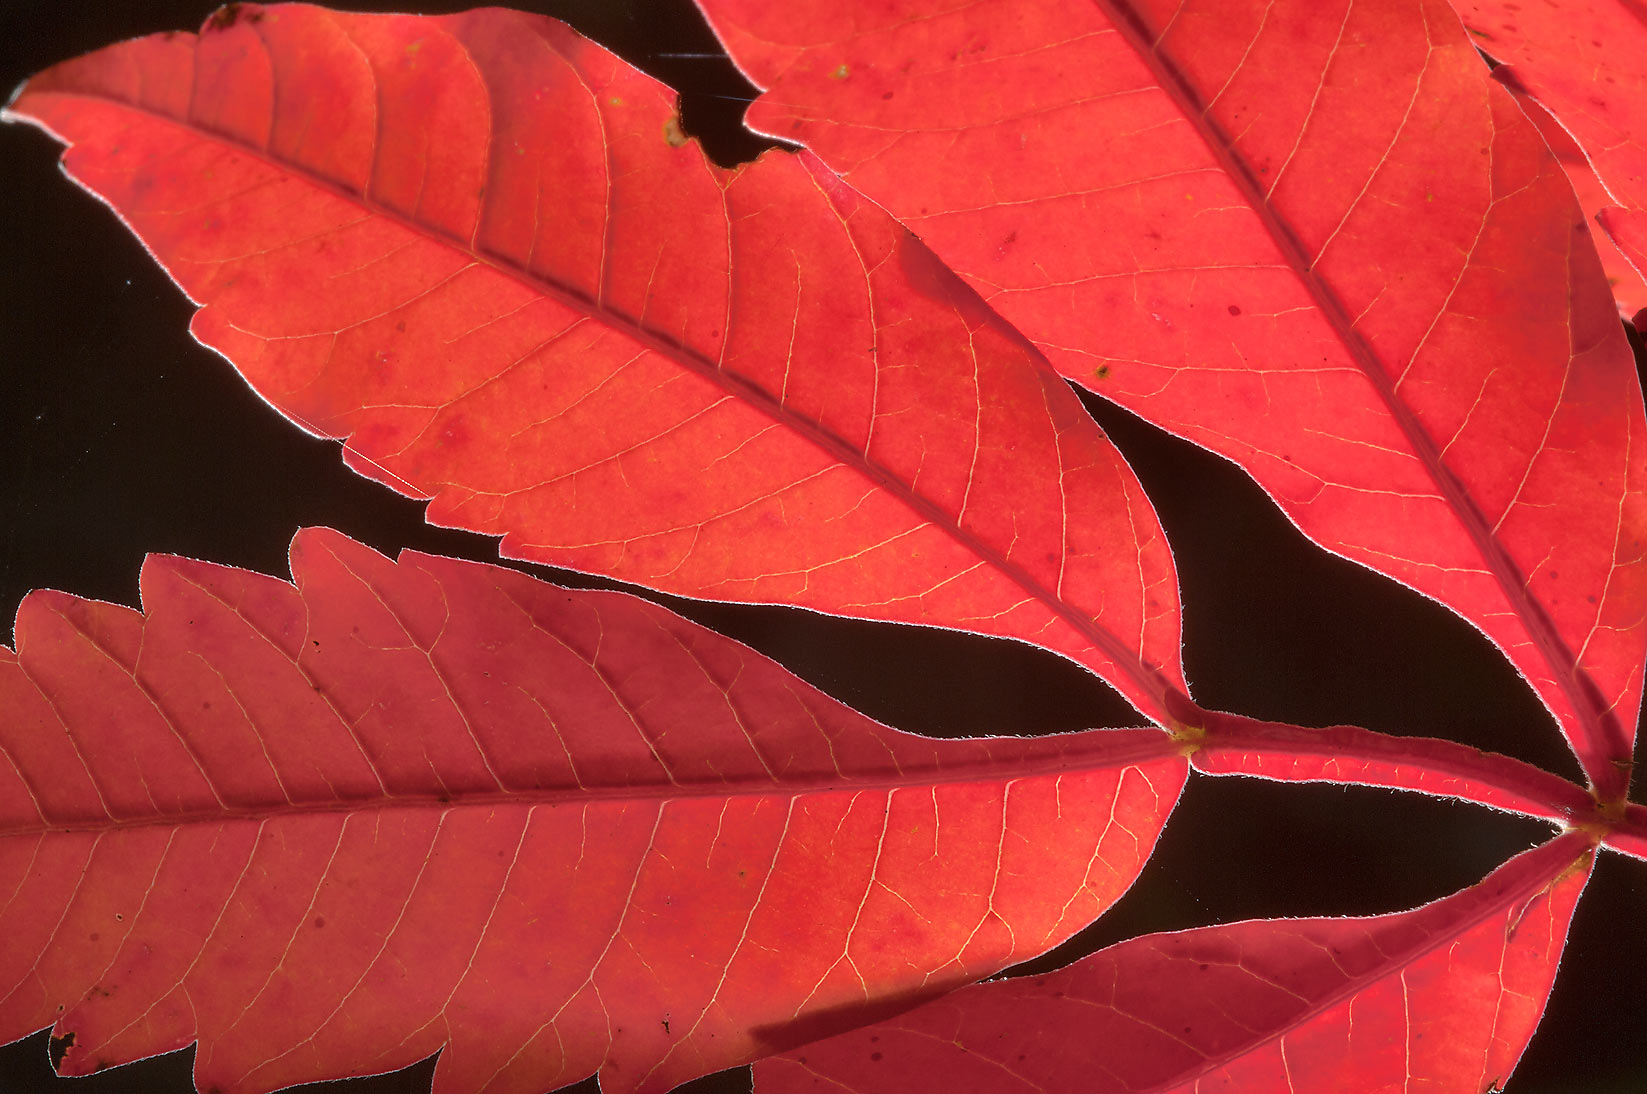 Red leaf of sumach in Lick Creek Park. College Station, Texas